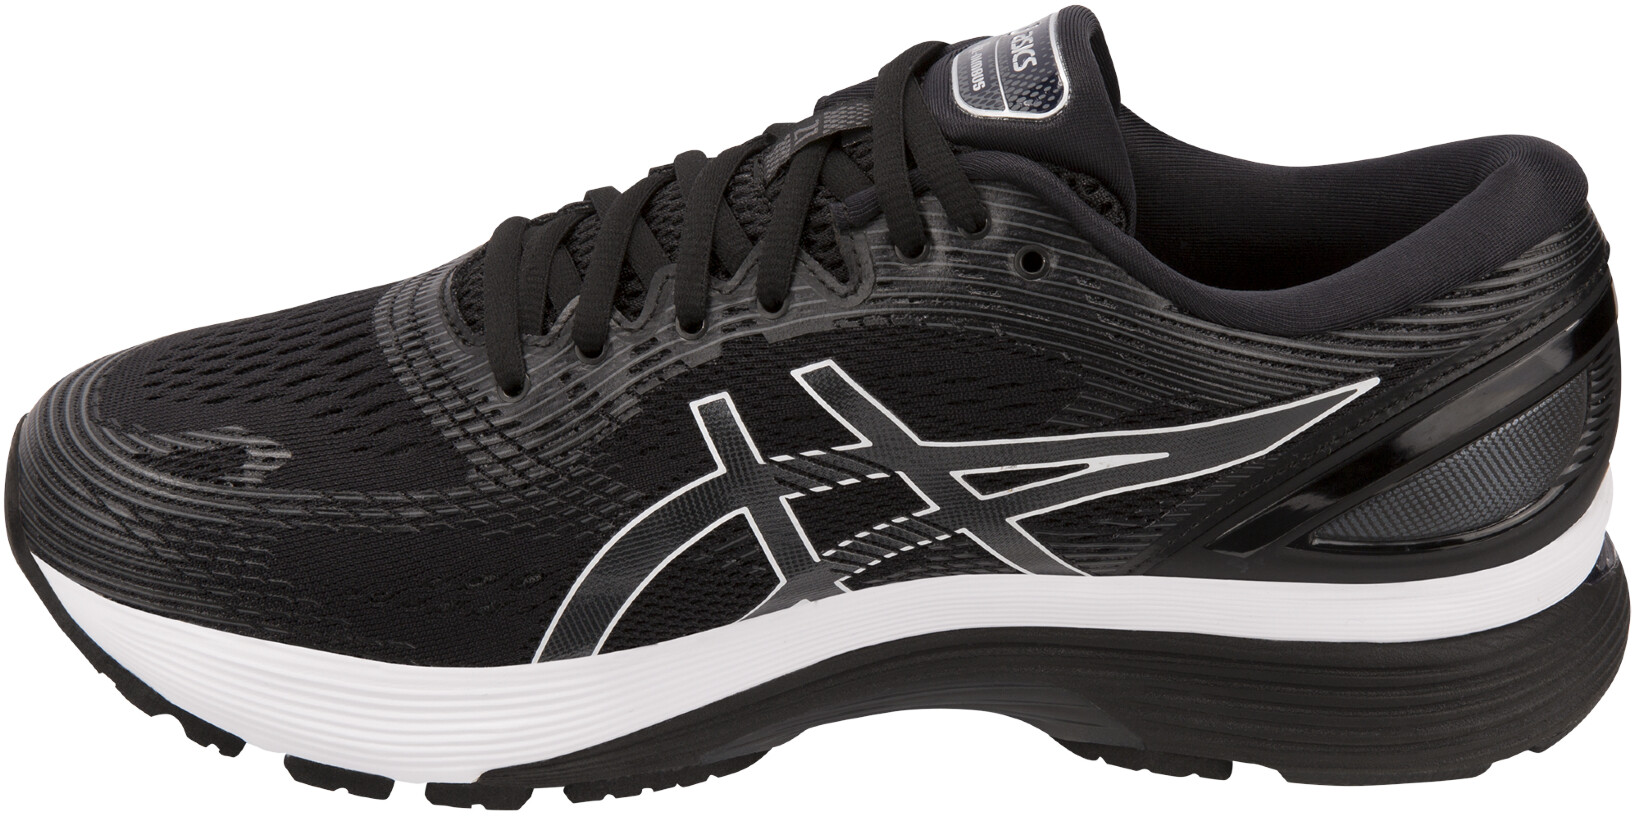 Asics GEL NIMBUS 20 Thomas Dam Intersport | Facebook